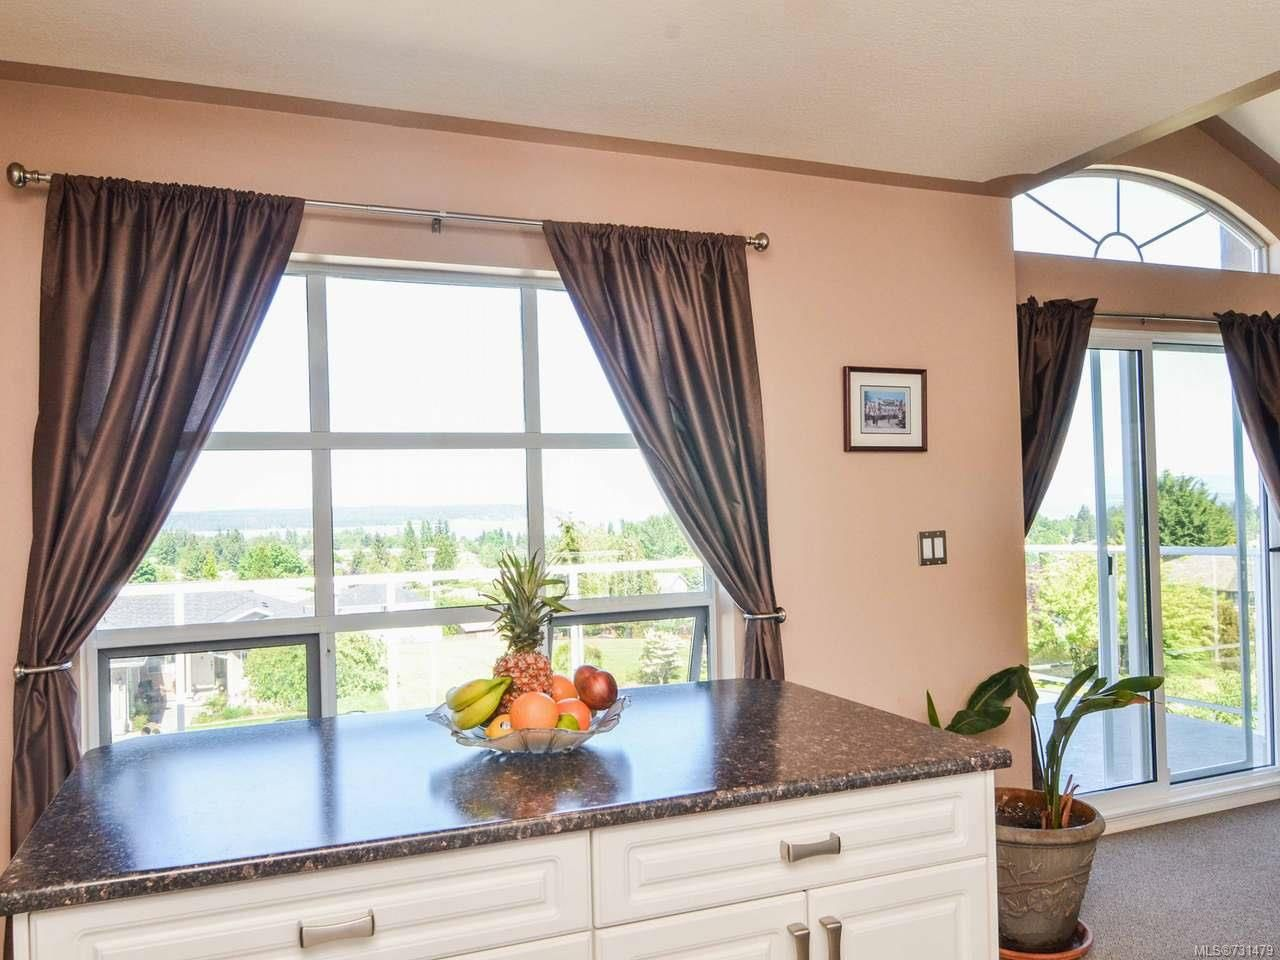 Photo 14: Photos: 753 Bowen Dr in CAMPBELL RIVER: CR Willow Point House for sale (Campbell River)  : MLS®# 731479